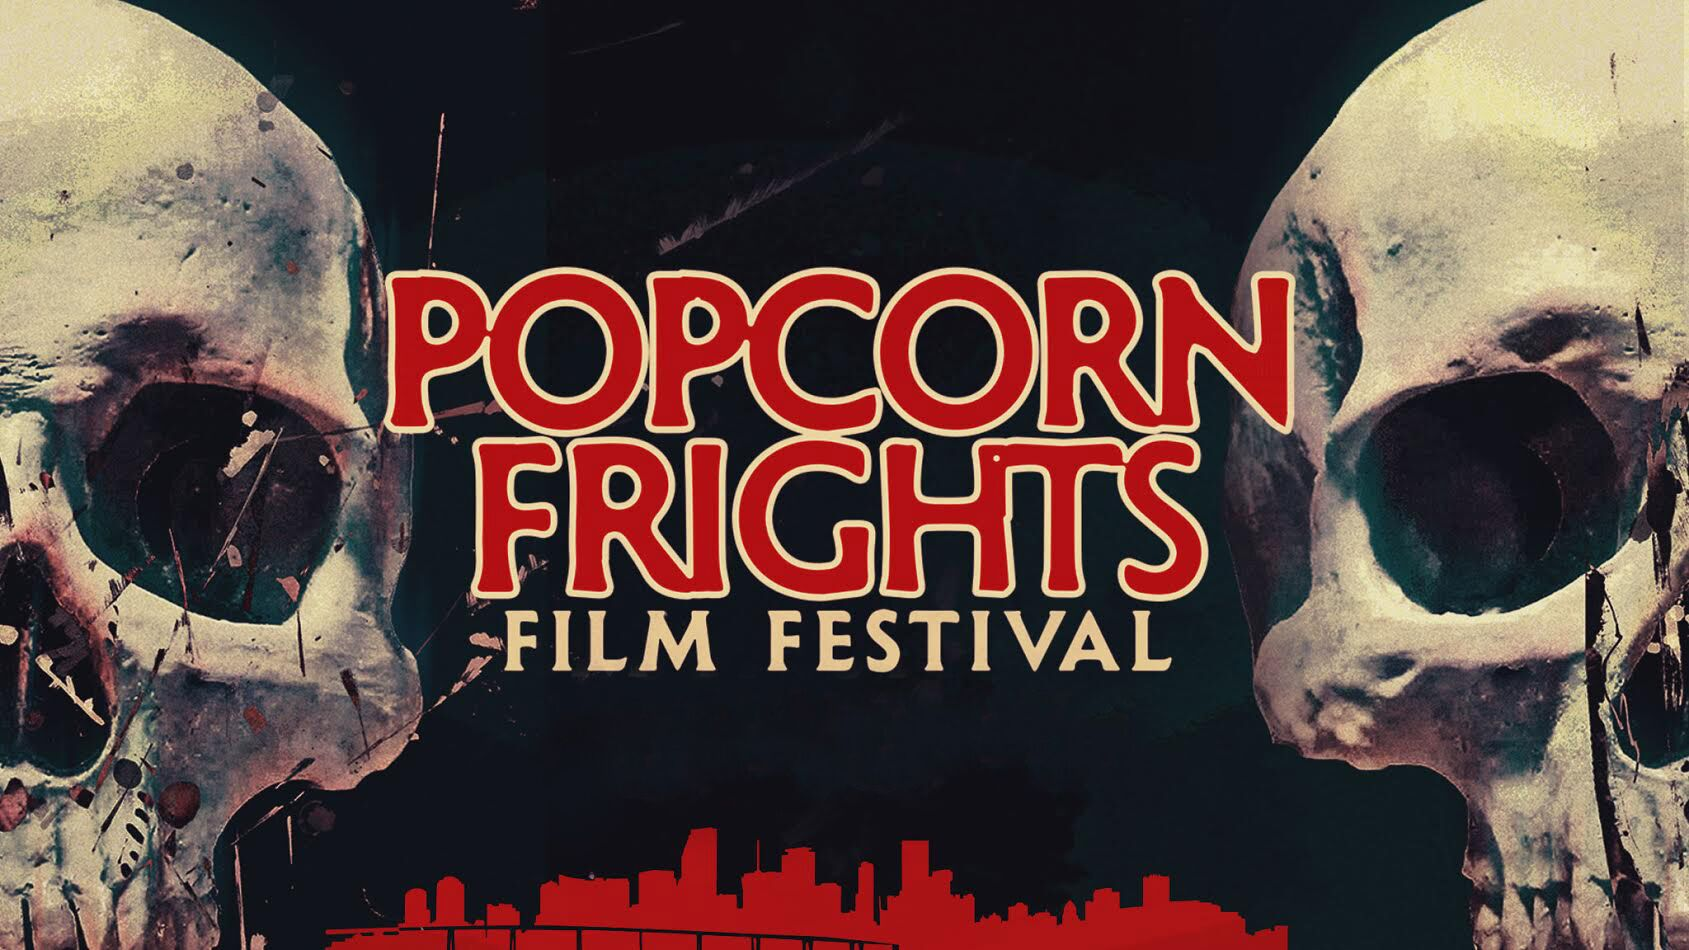 Popcorn Frights - Florida's Spookiest Film Festival Popcorn Frights Call for Entries!